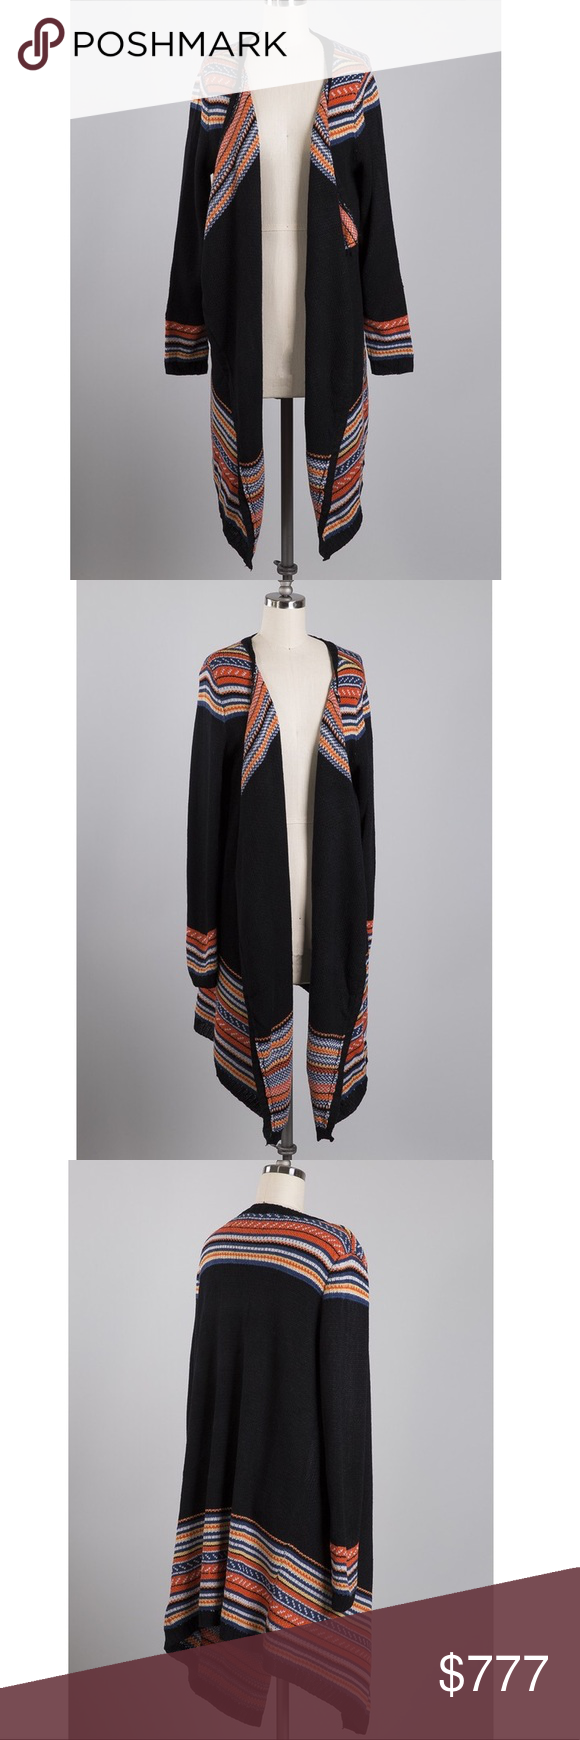 248914aad54d 🍂 Open Front Cardigan Multi colored striped open cardigan. Material ...